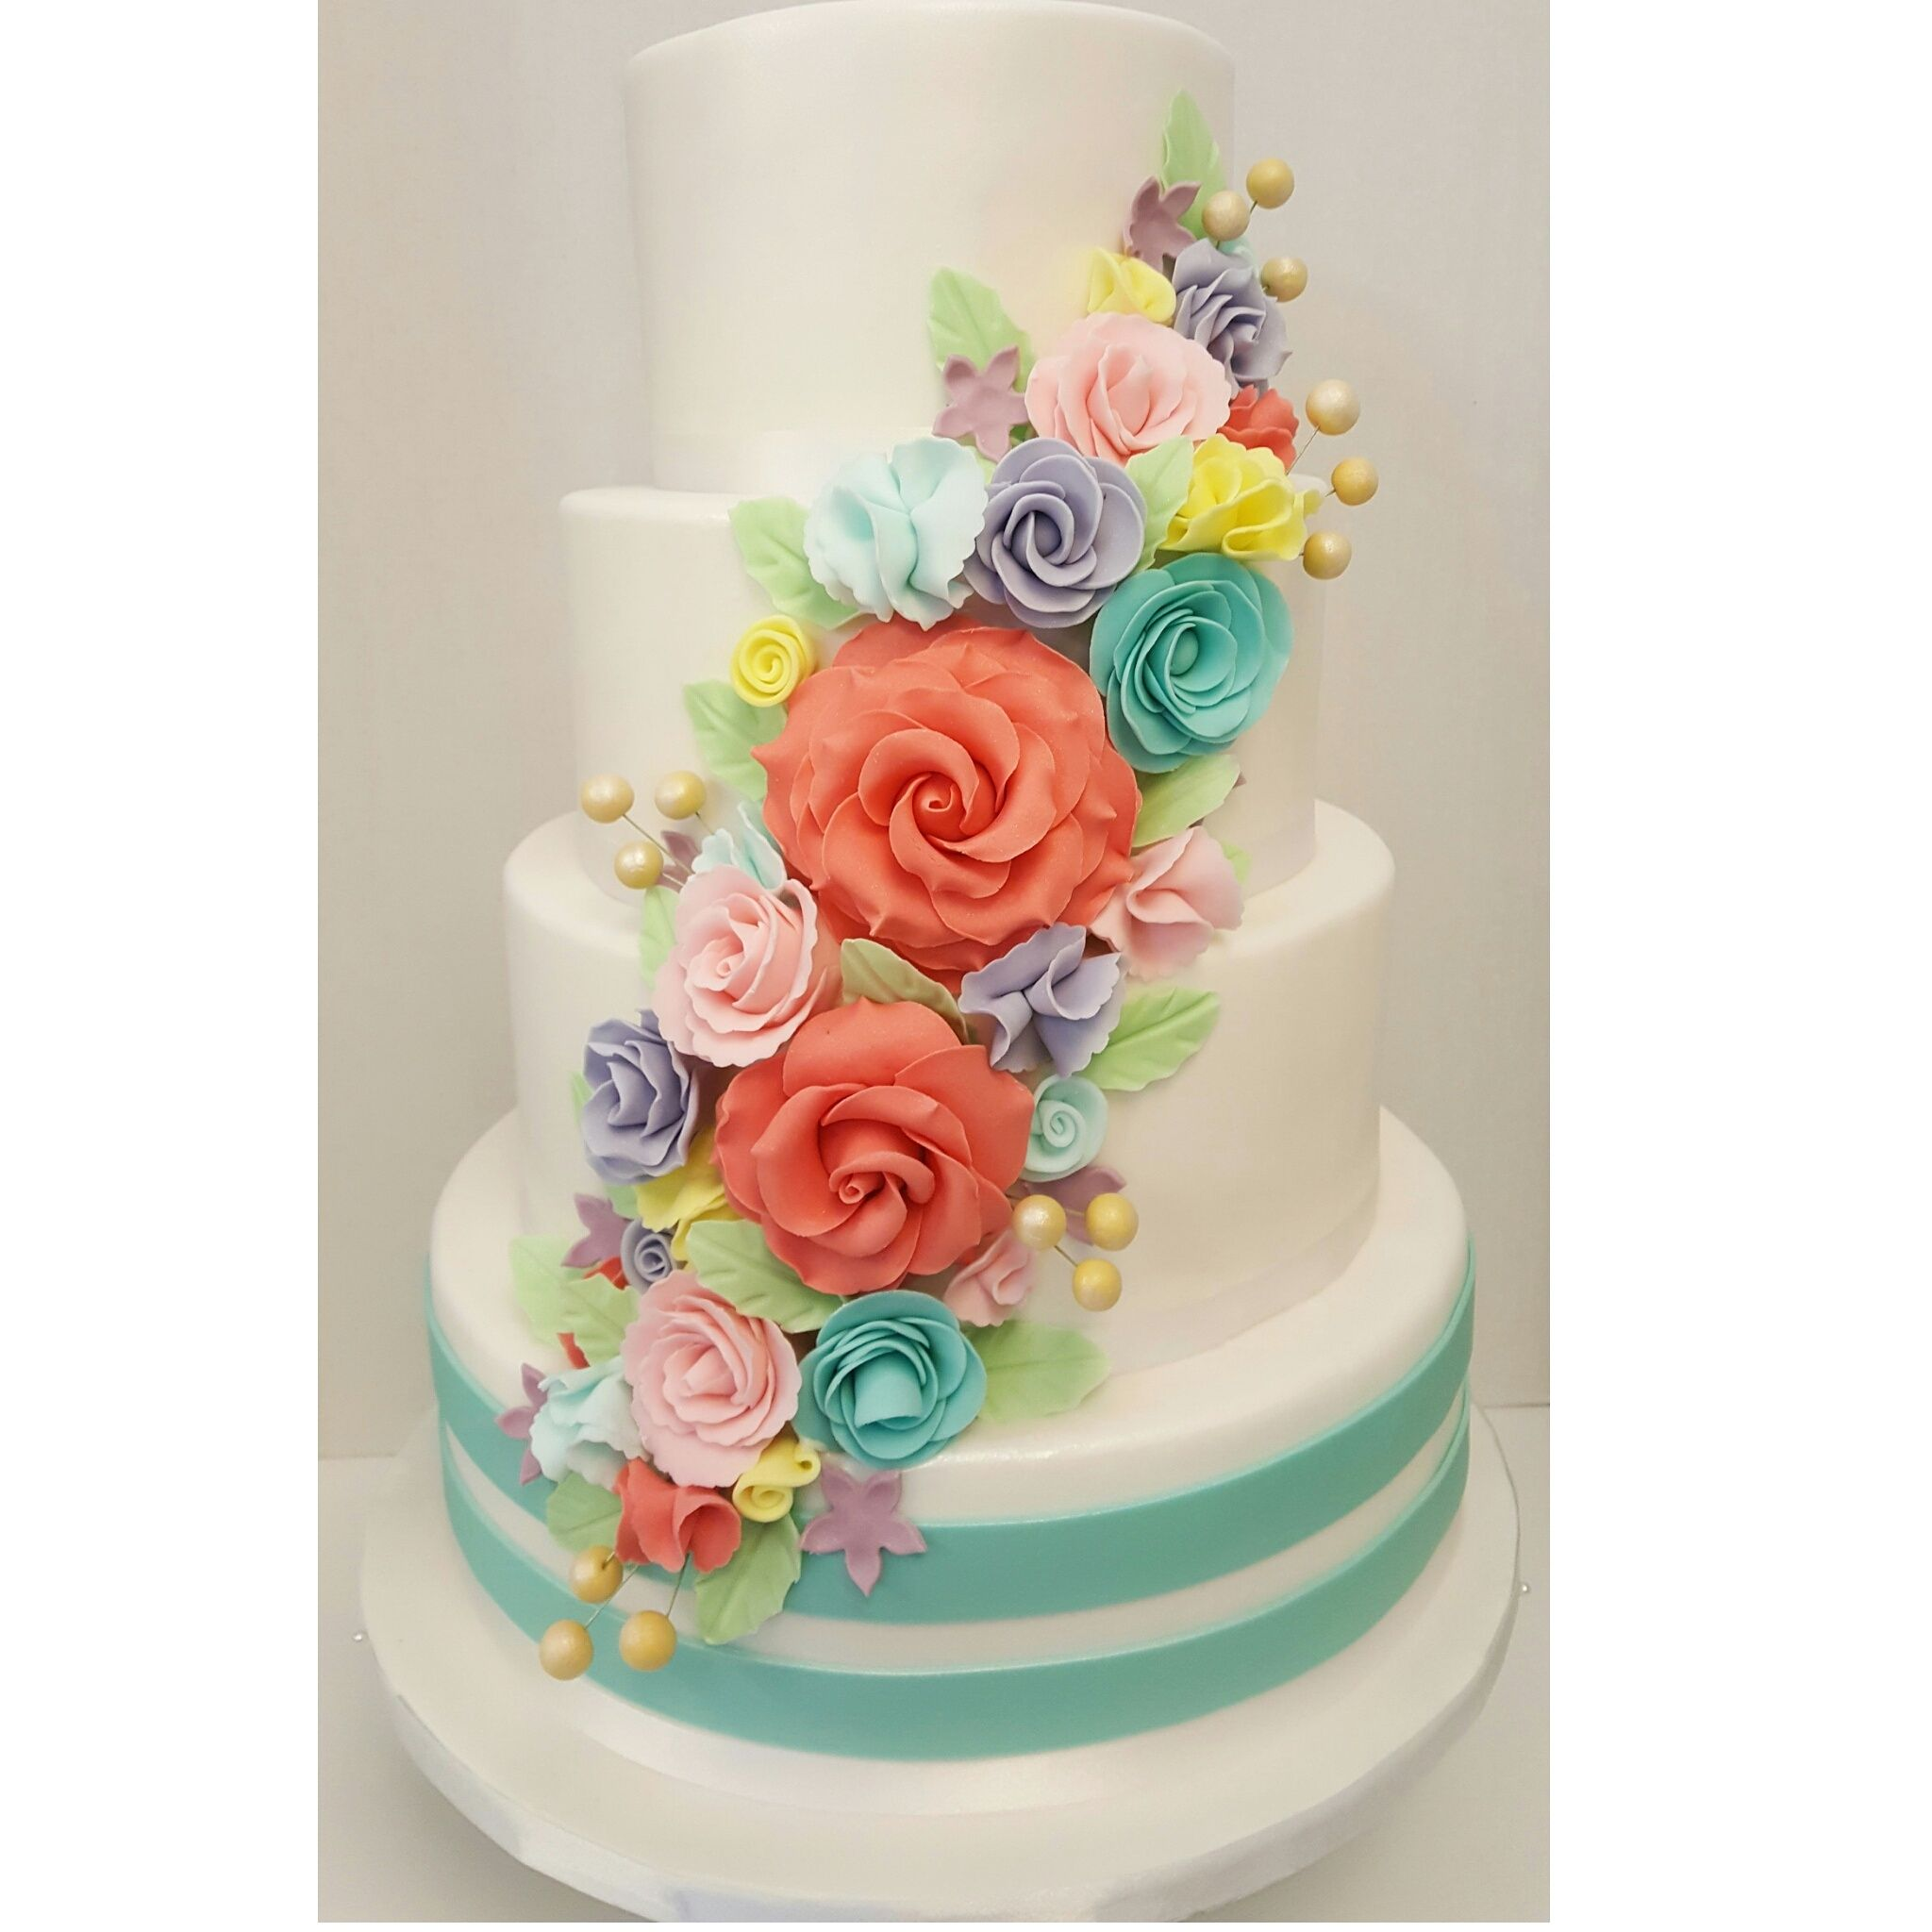 Beautiful Wedding Cakes By The Baking Grounds Bakery Café: Vibrant Realistic Flowers Wedding Cake